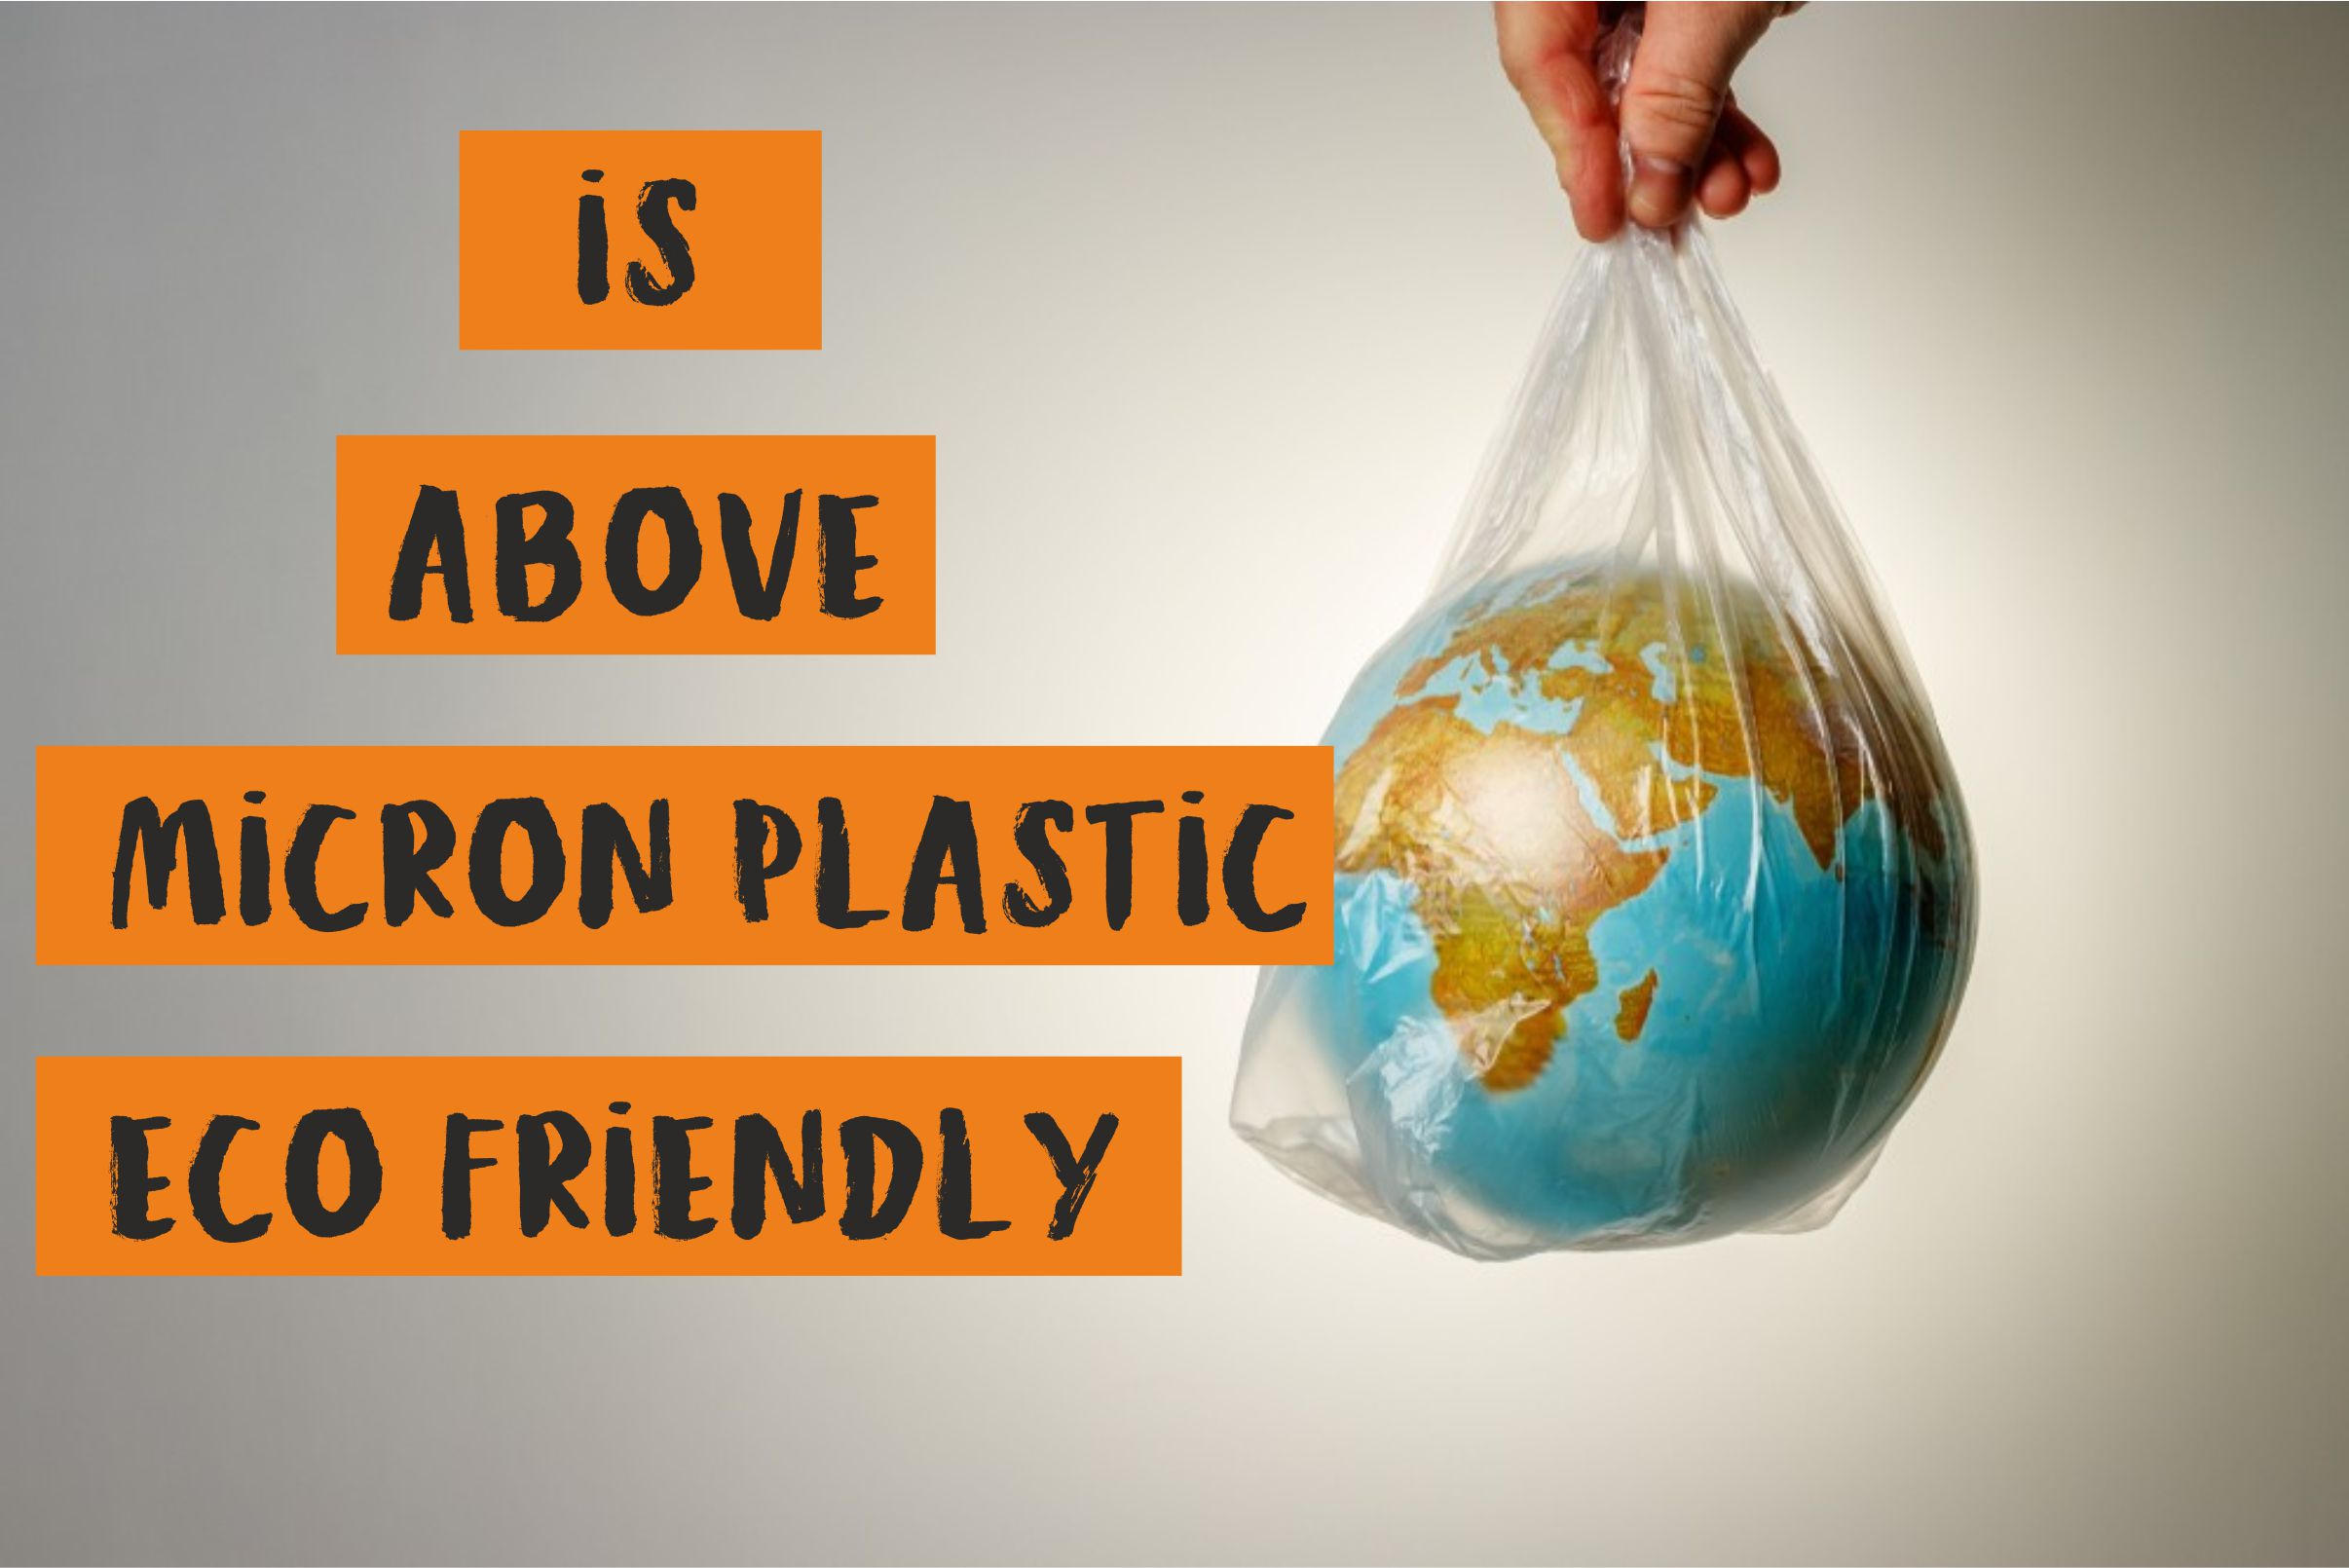 Is above 51 Micron Plastic is Eco-Friendly?